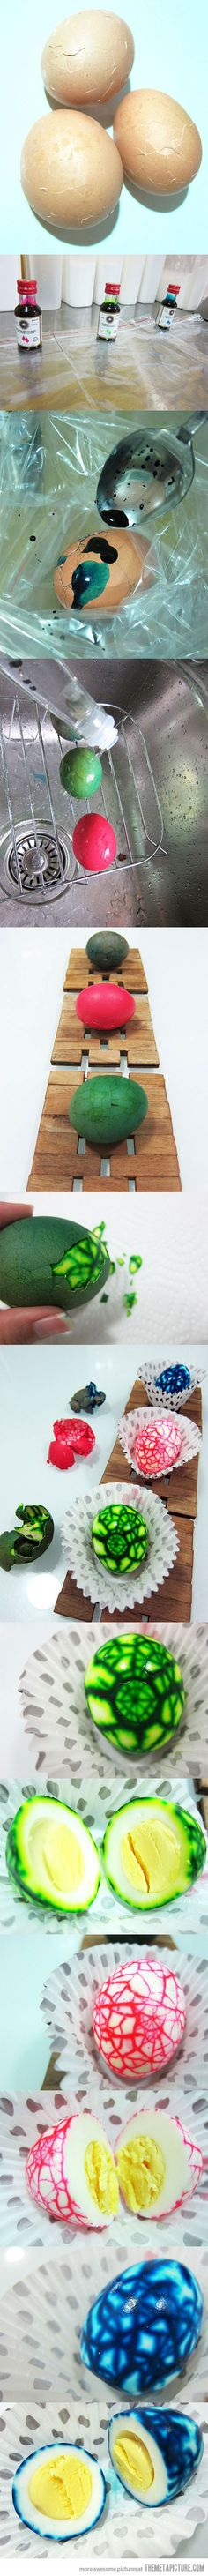 Marbled Easter Eggs!